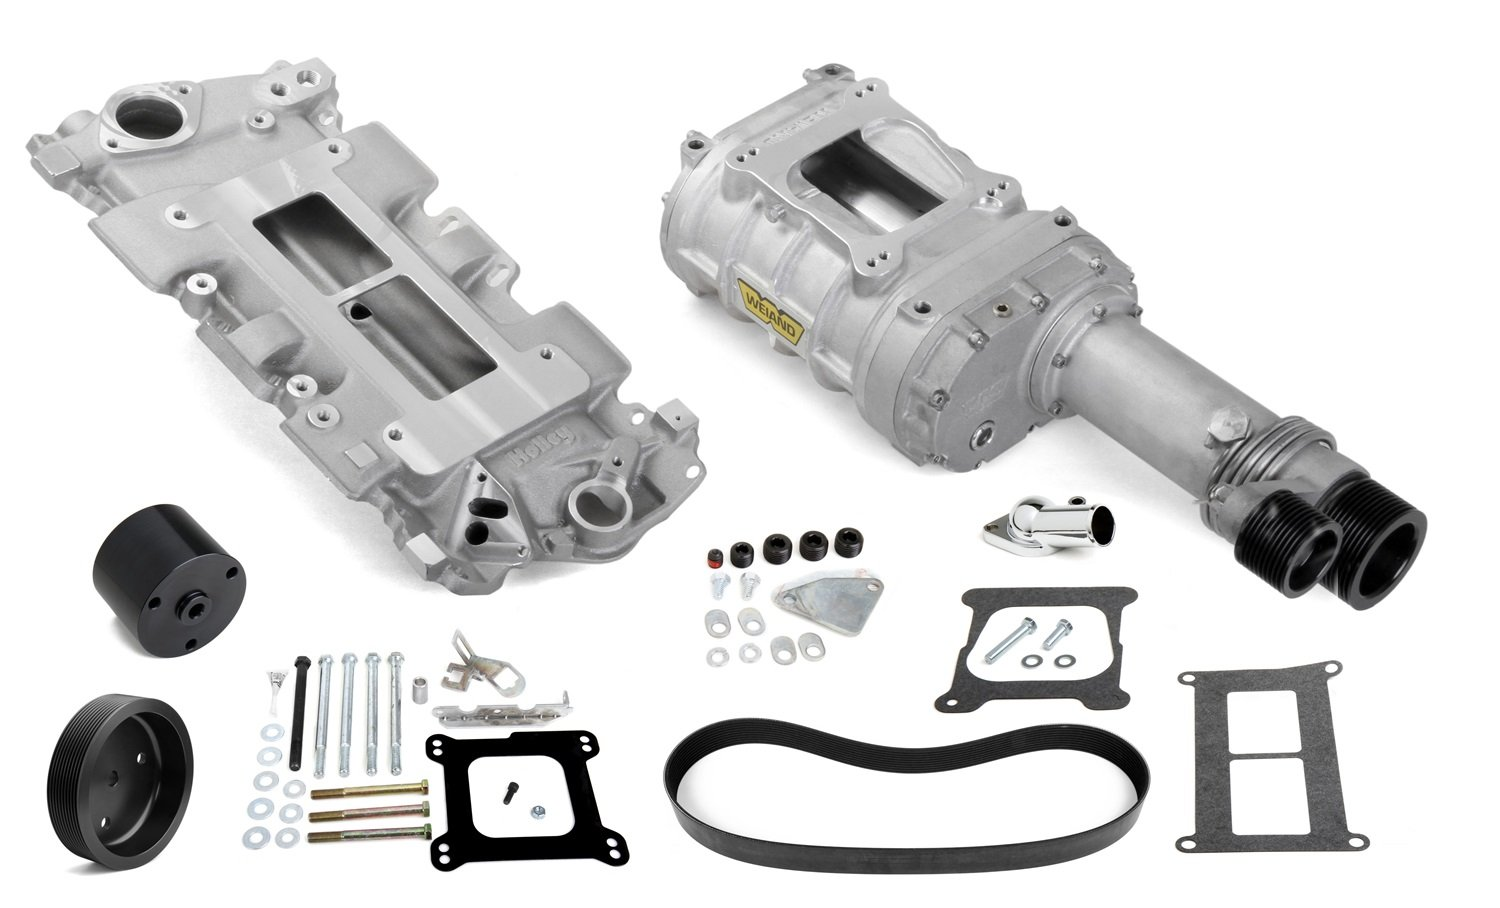 Weiand 7740-1 144 Pro-Street Supercharger Kit